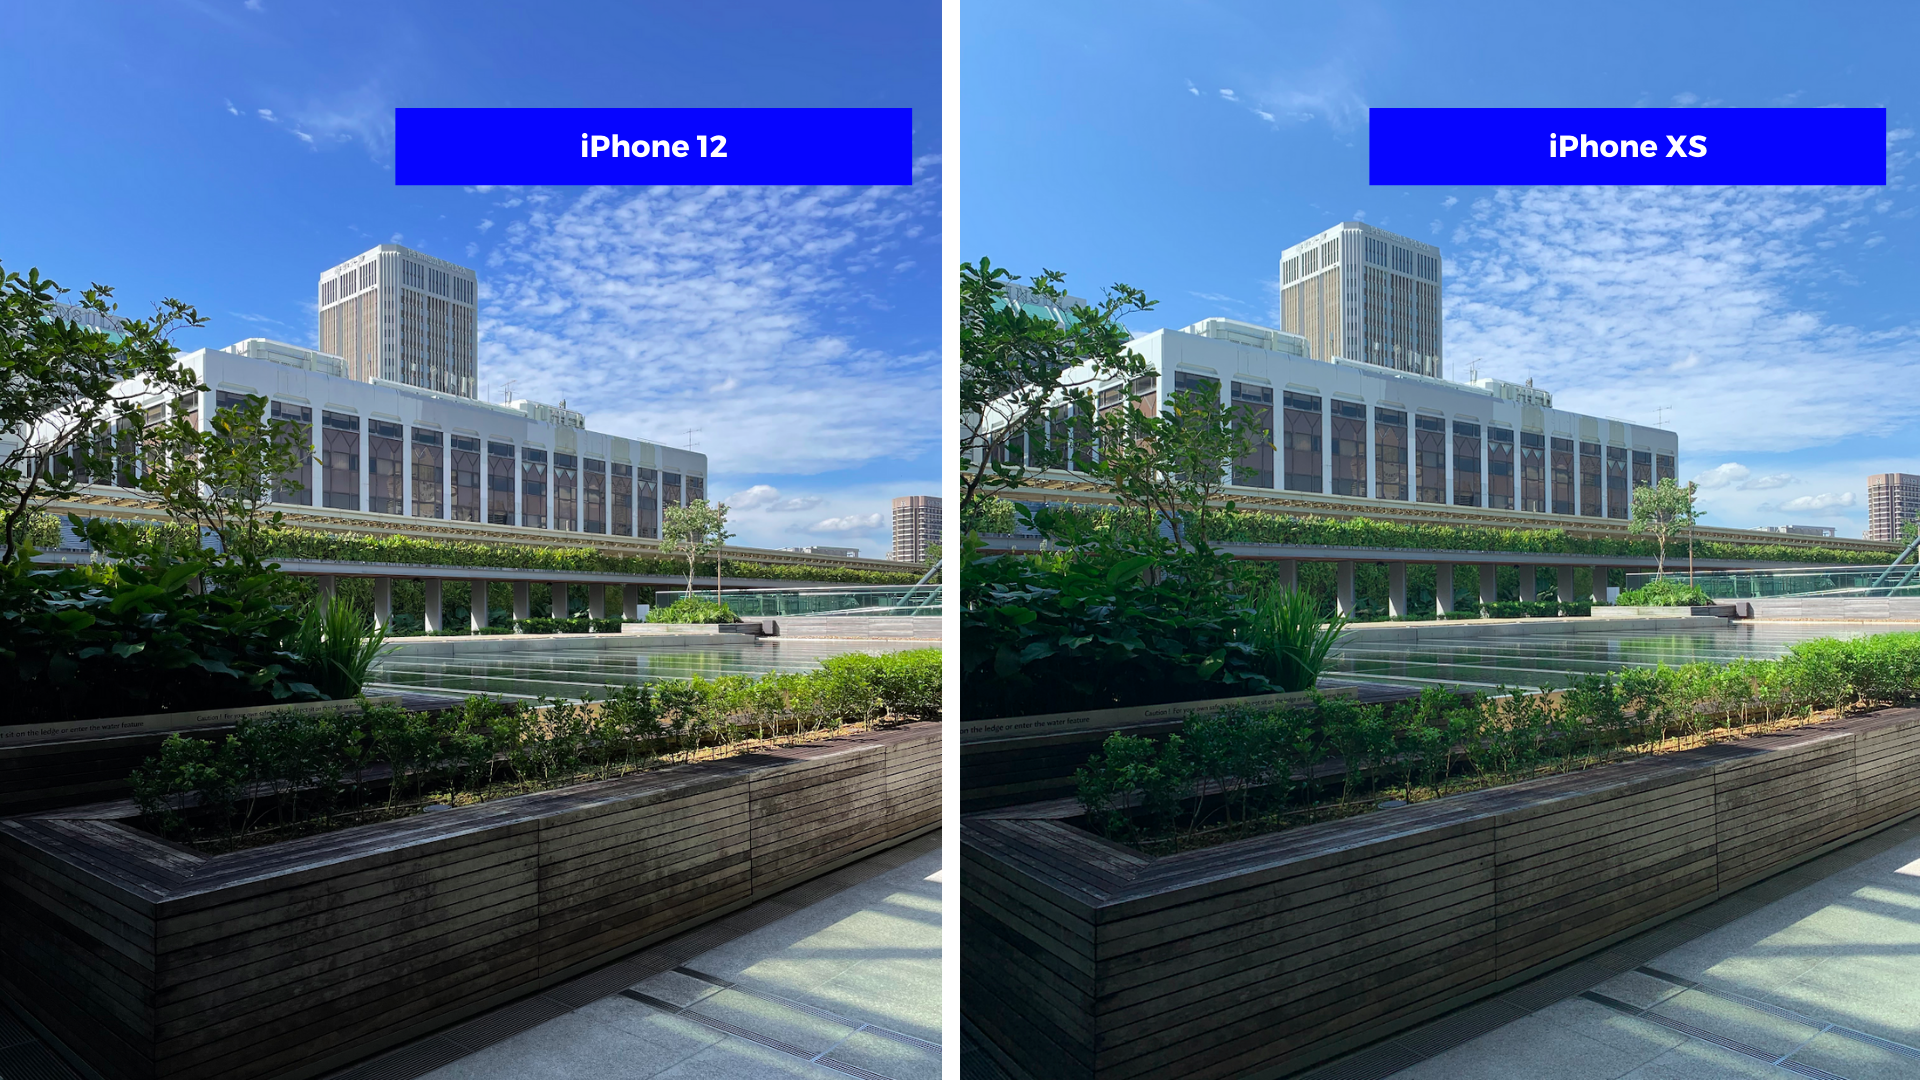 Is the iPhone 12 camera really that great? Here's what we found